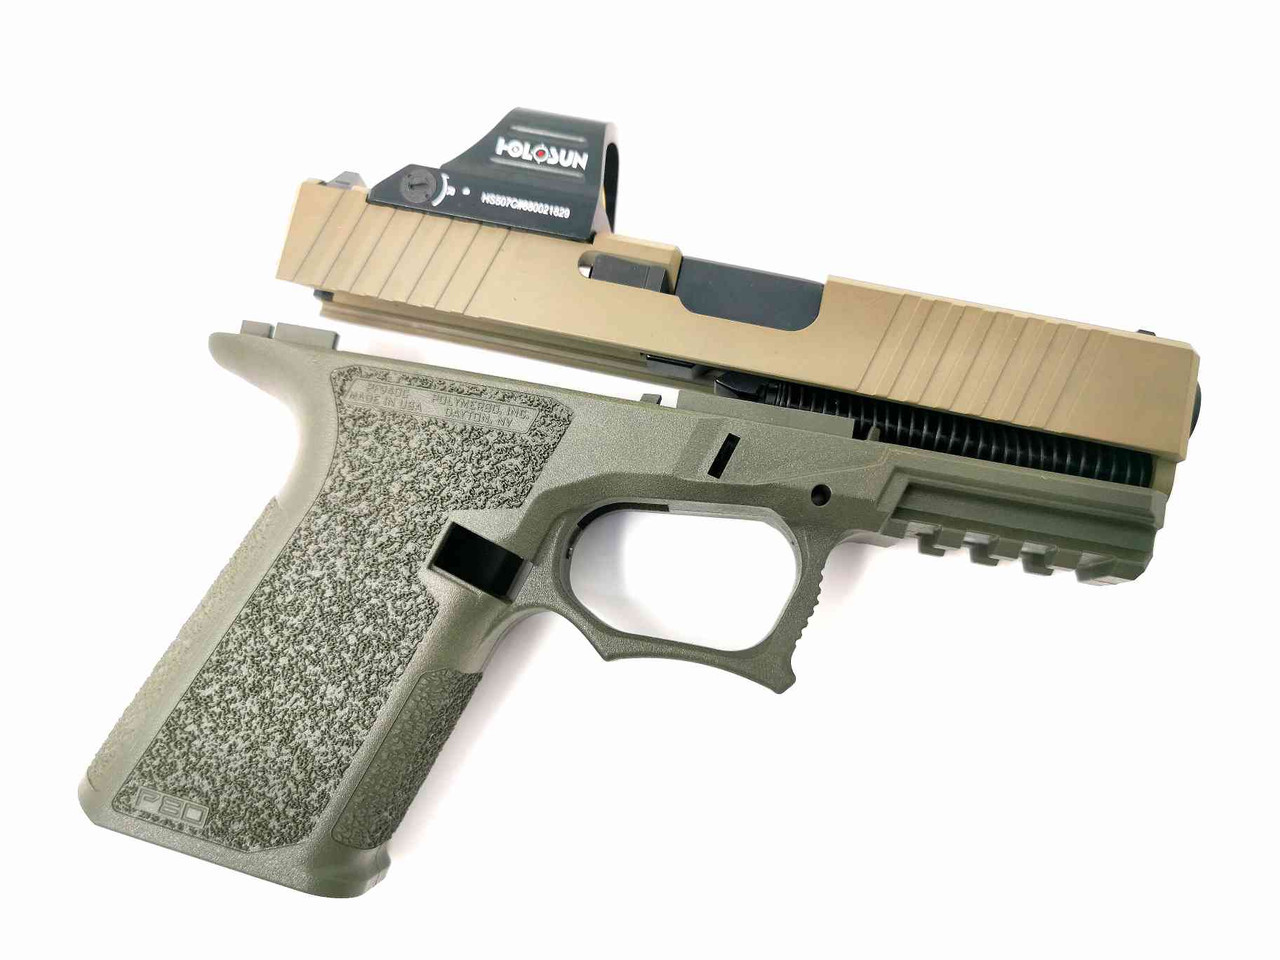 PF940c Full Build Kit - RMR - FDE